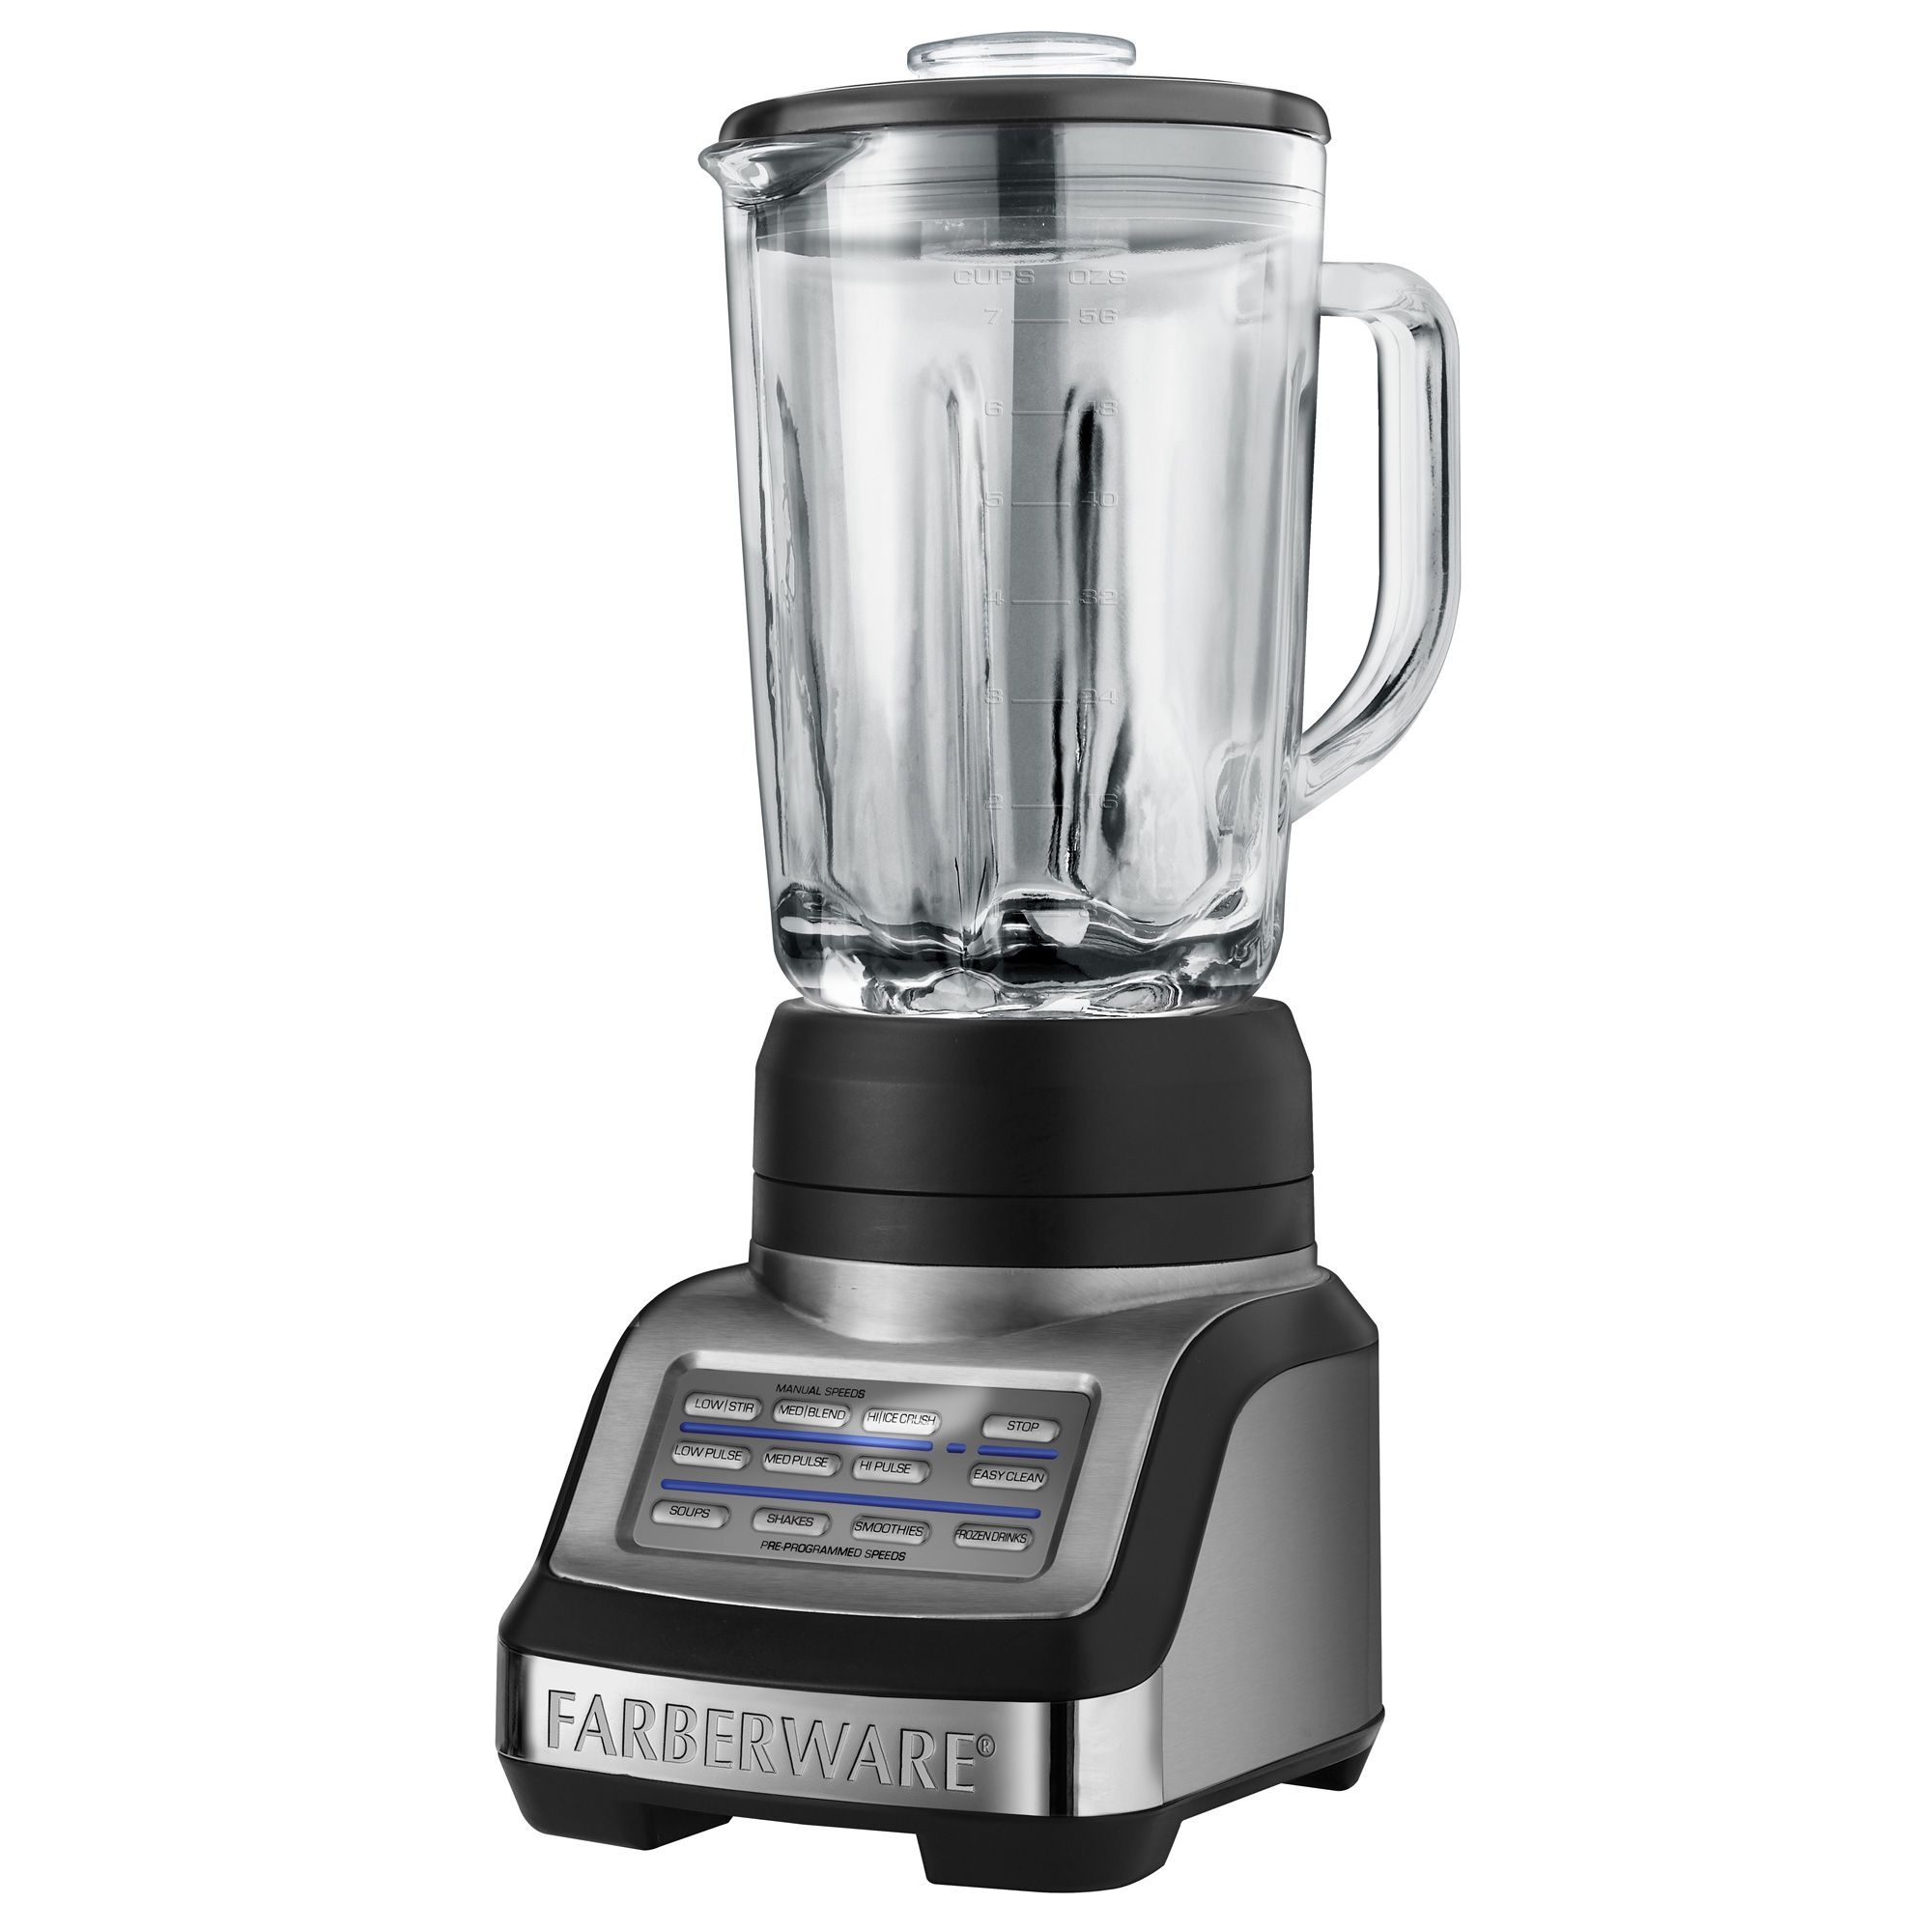 Buy This Farberware 10-speed Blender That Crushes Ice! The